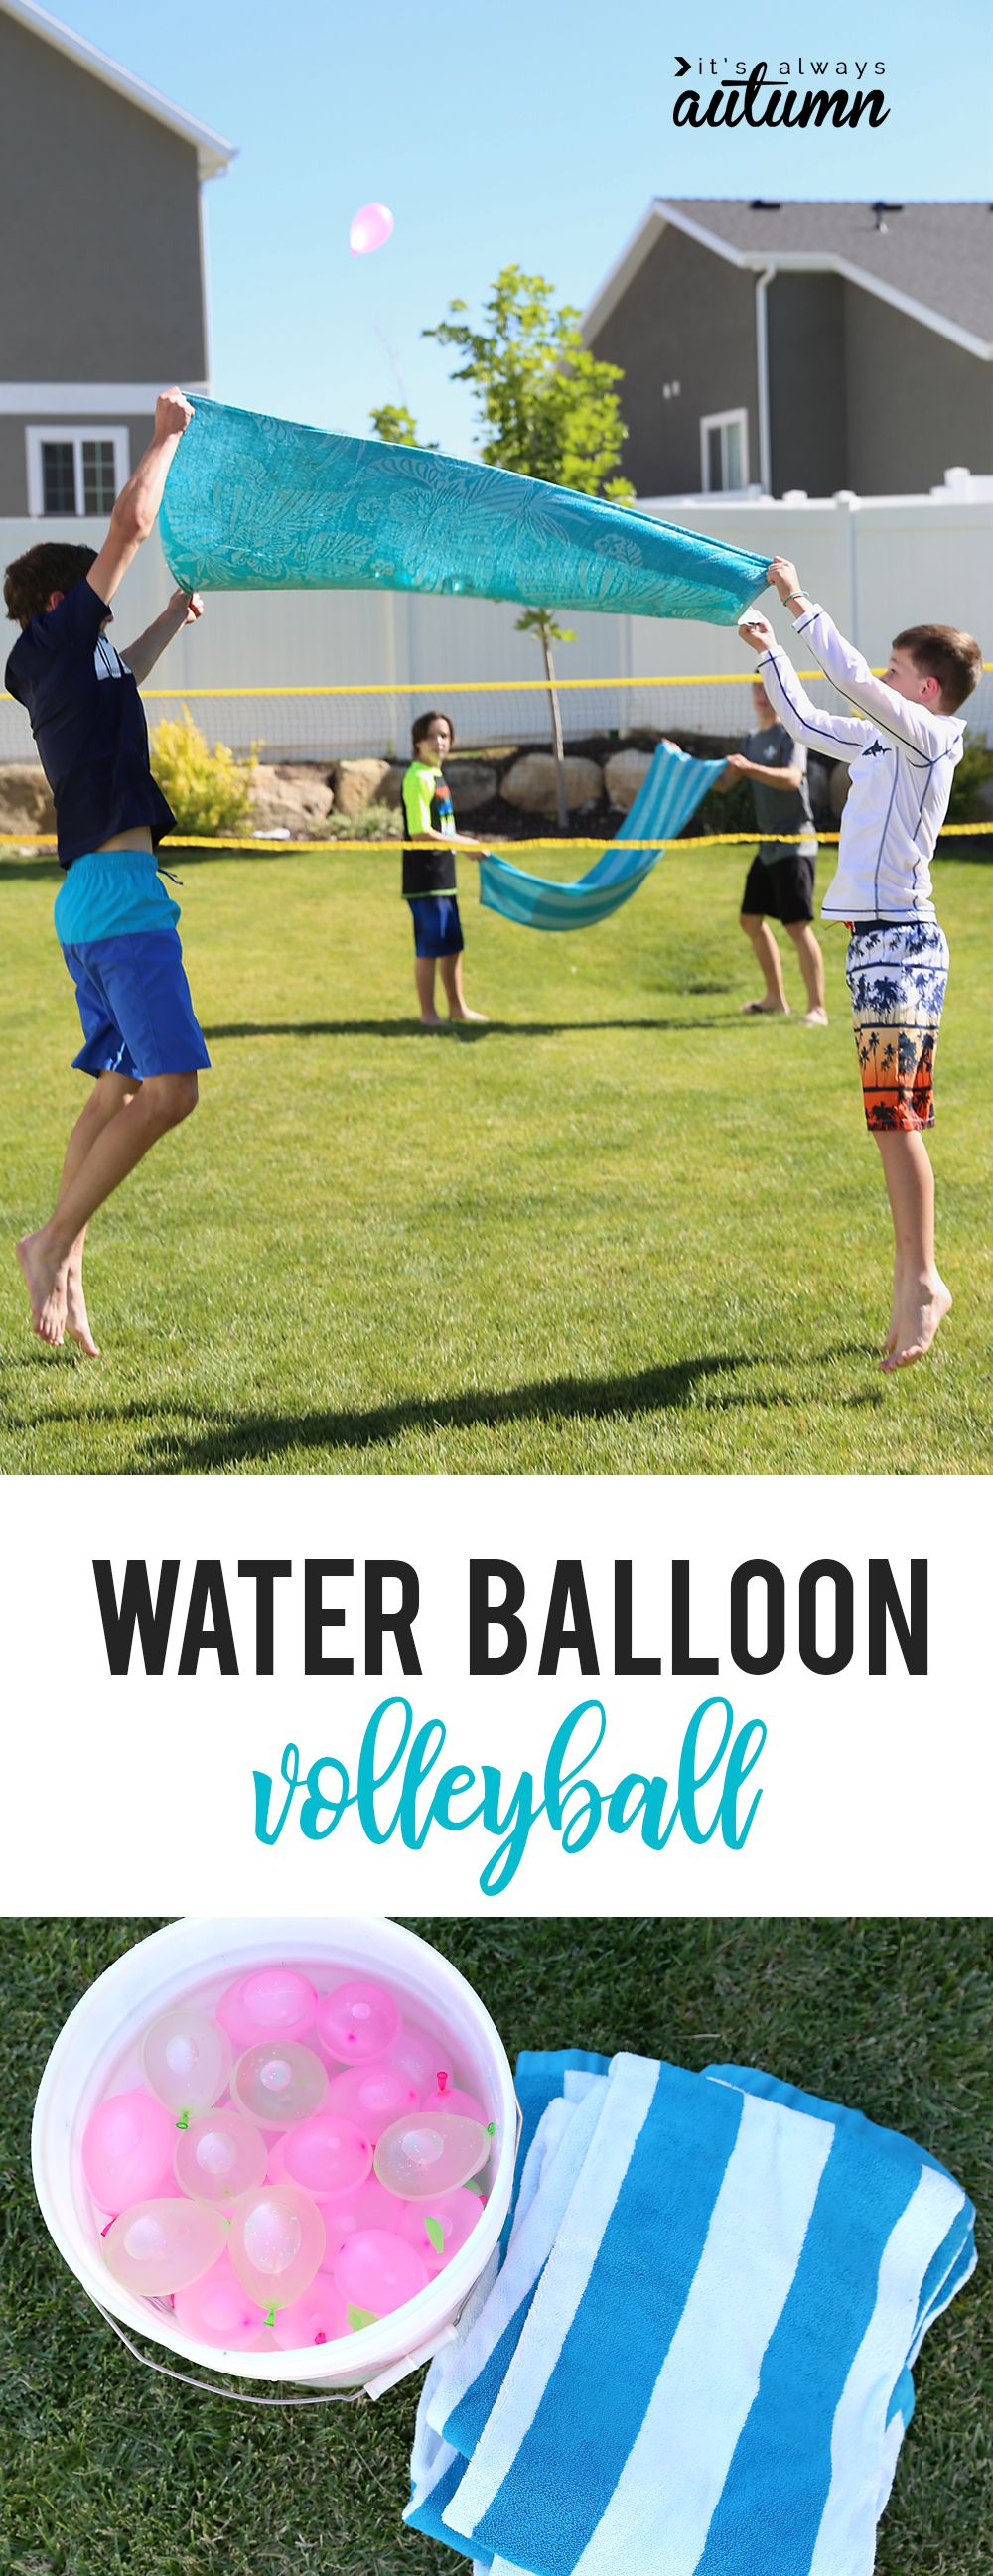 Water Balloon Volleyball Hilarious Summer Water Game It S Always Autumn In 2020 Group Games For Kids Water Games For Kids Youth Games